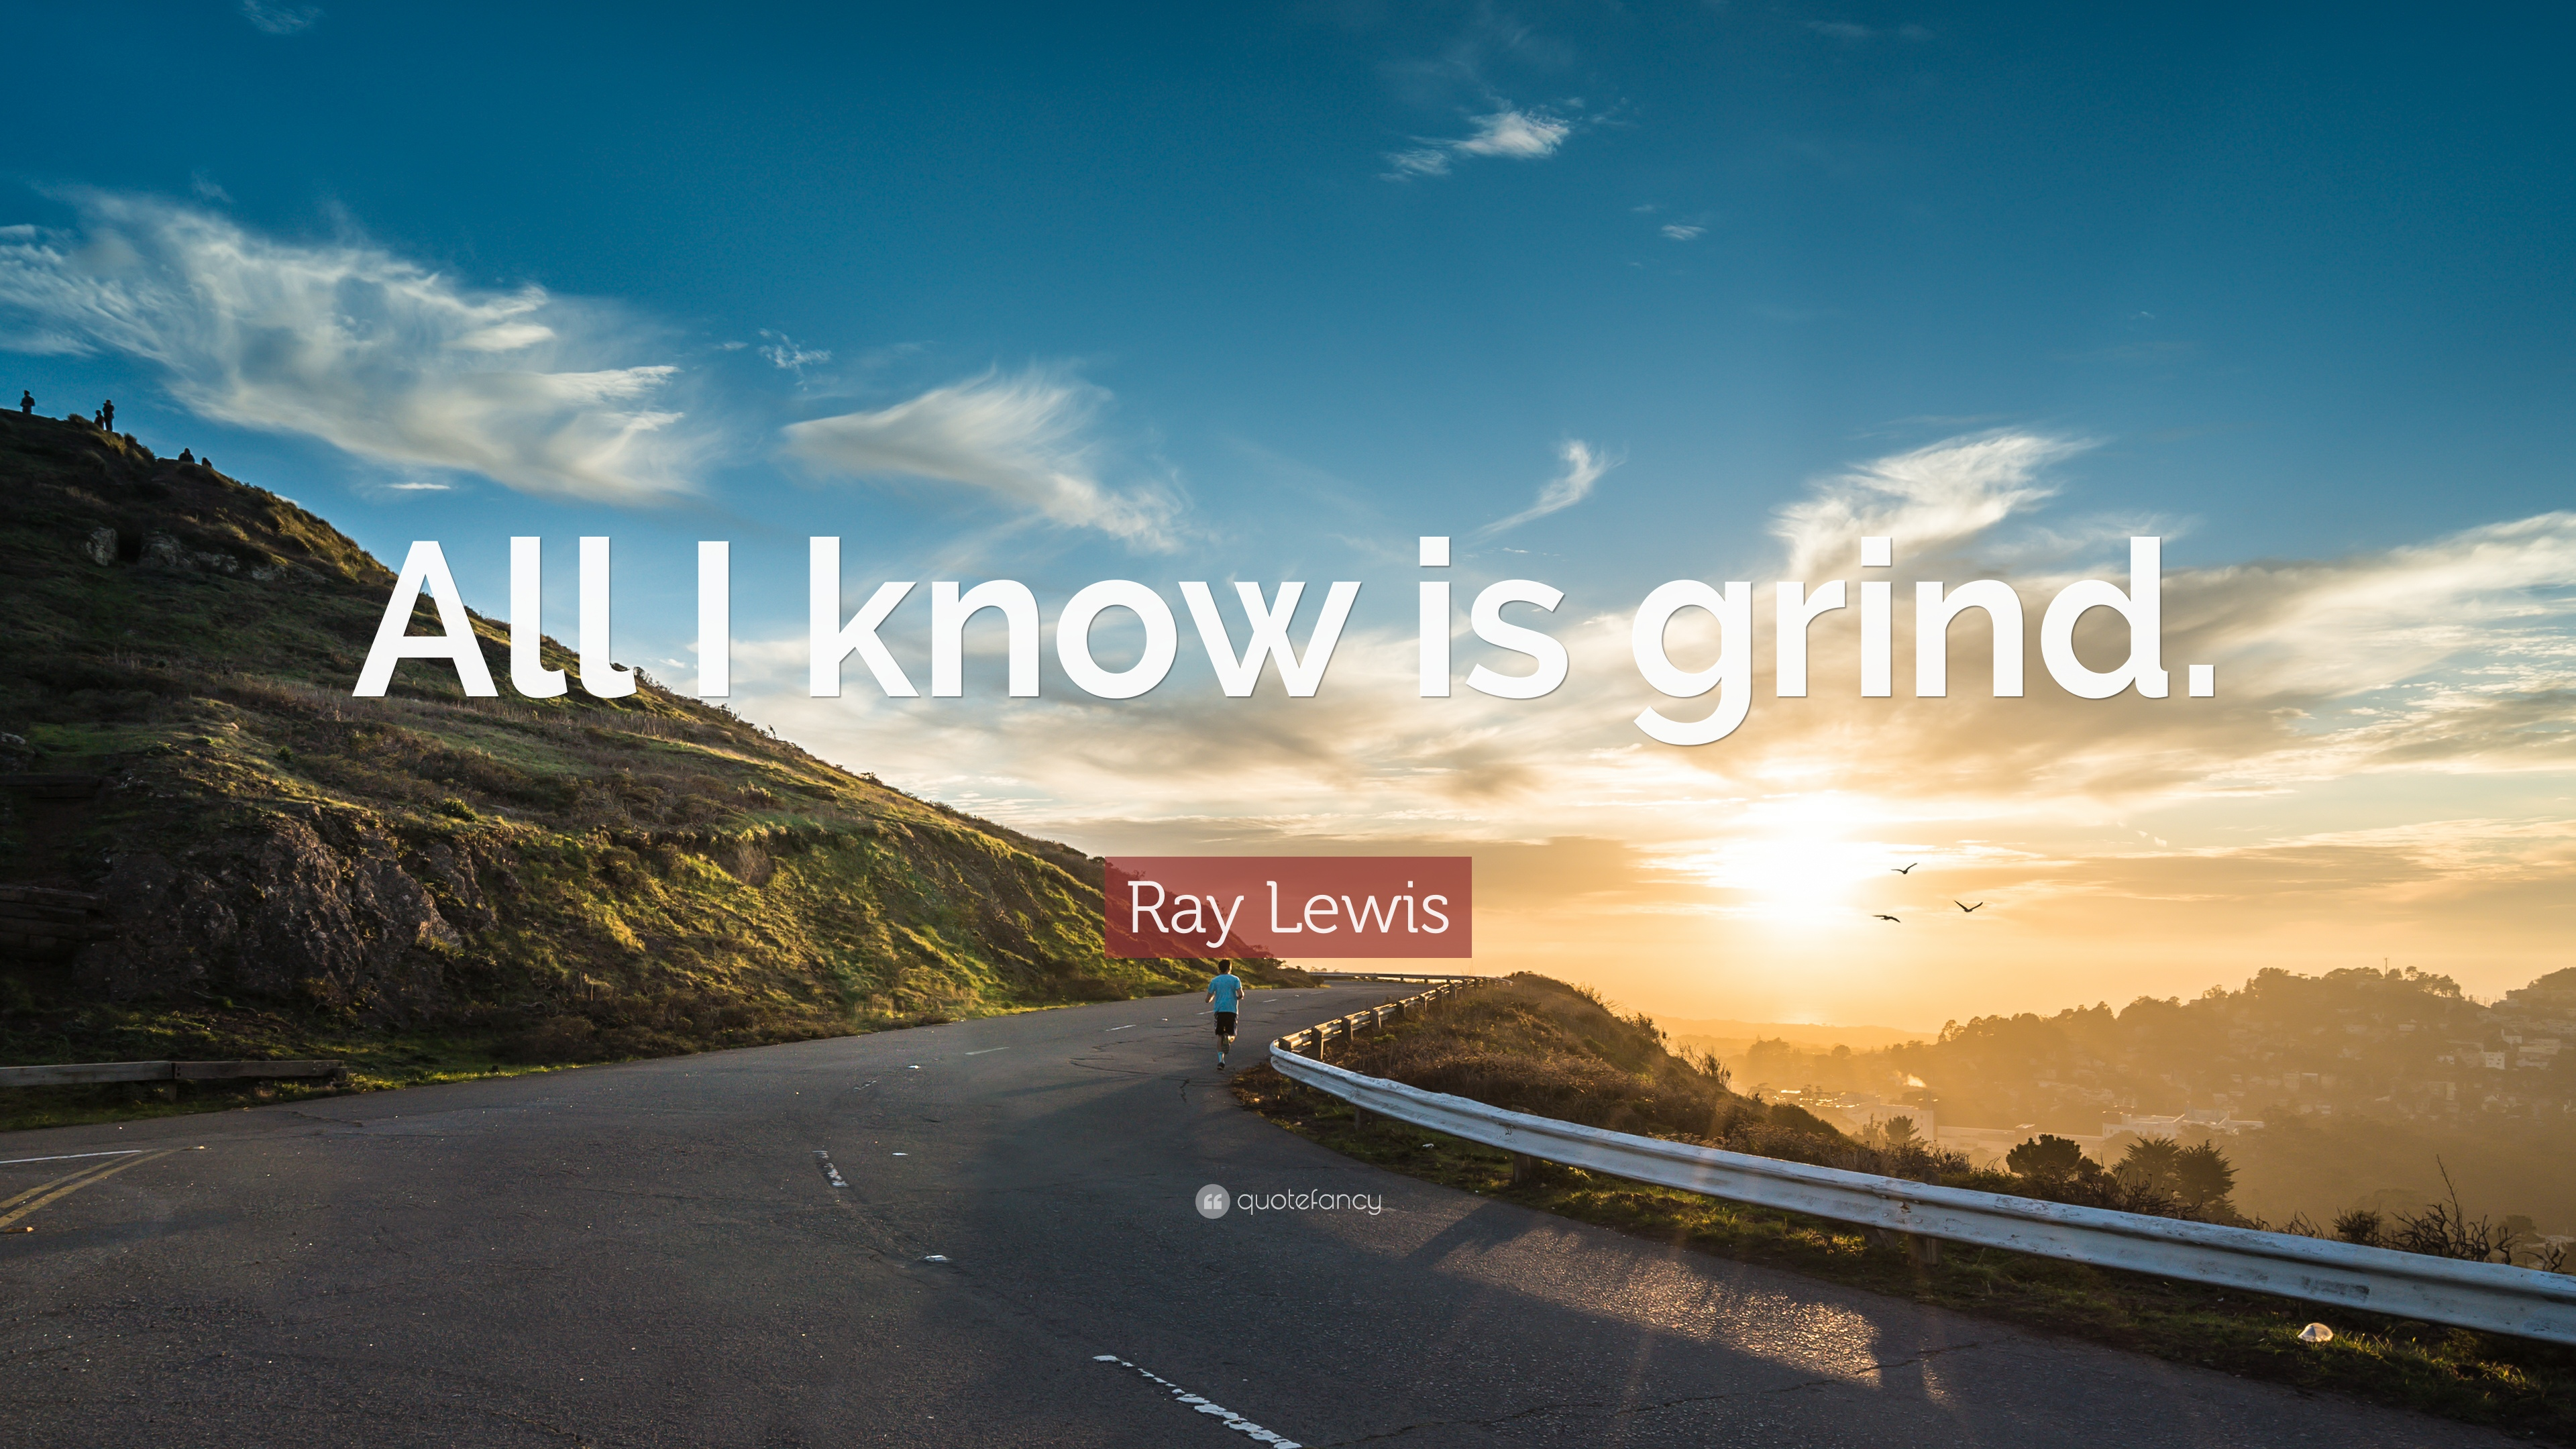 Ray Lewis Quotes About Leadership: Ray Lewis Quotes (100 Wallpapers)